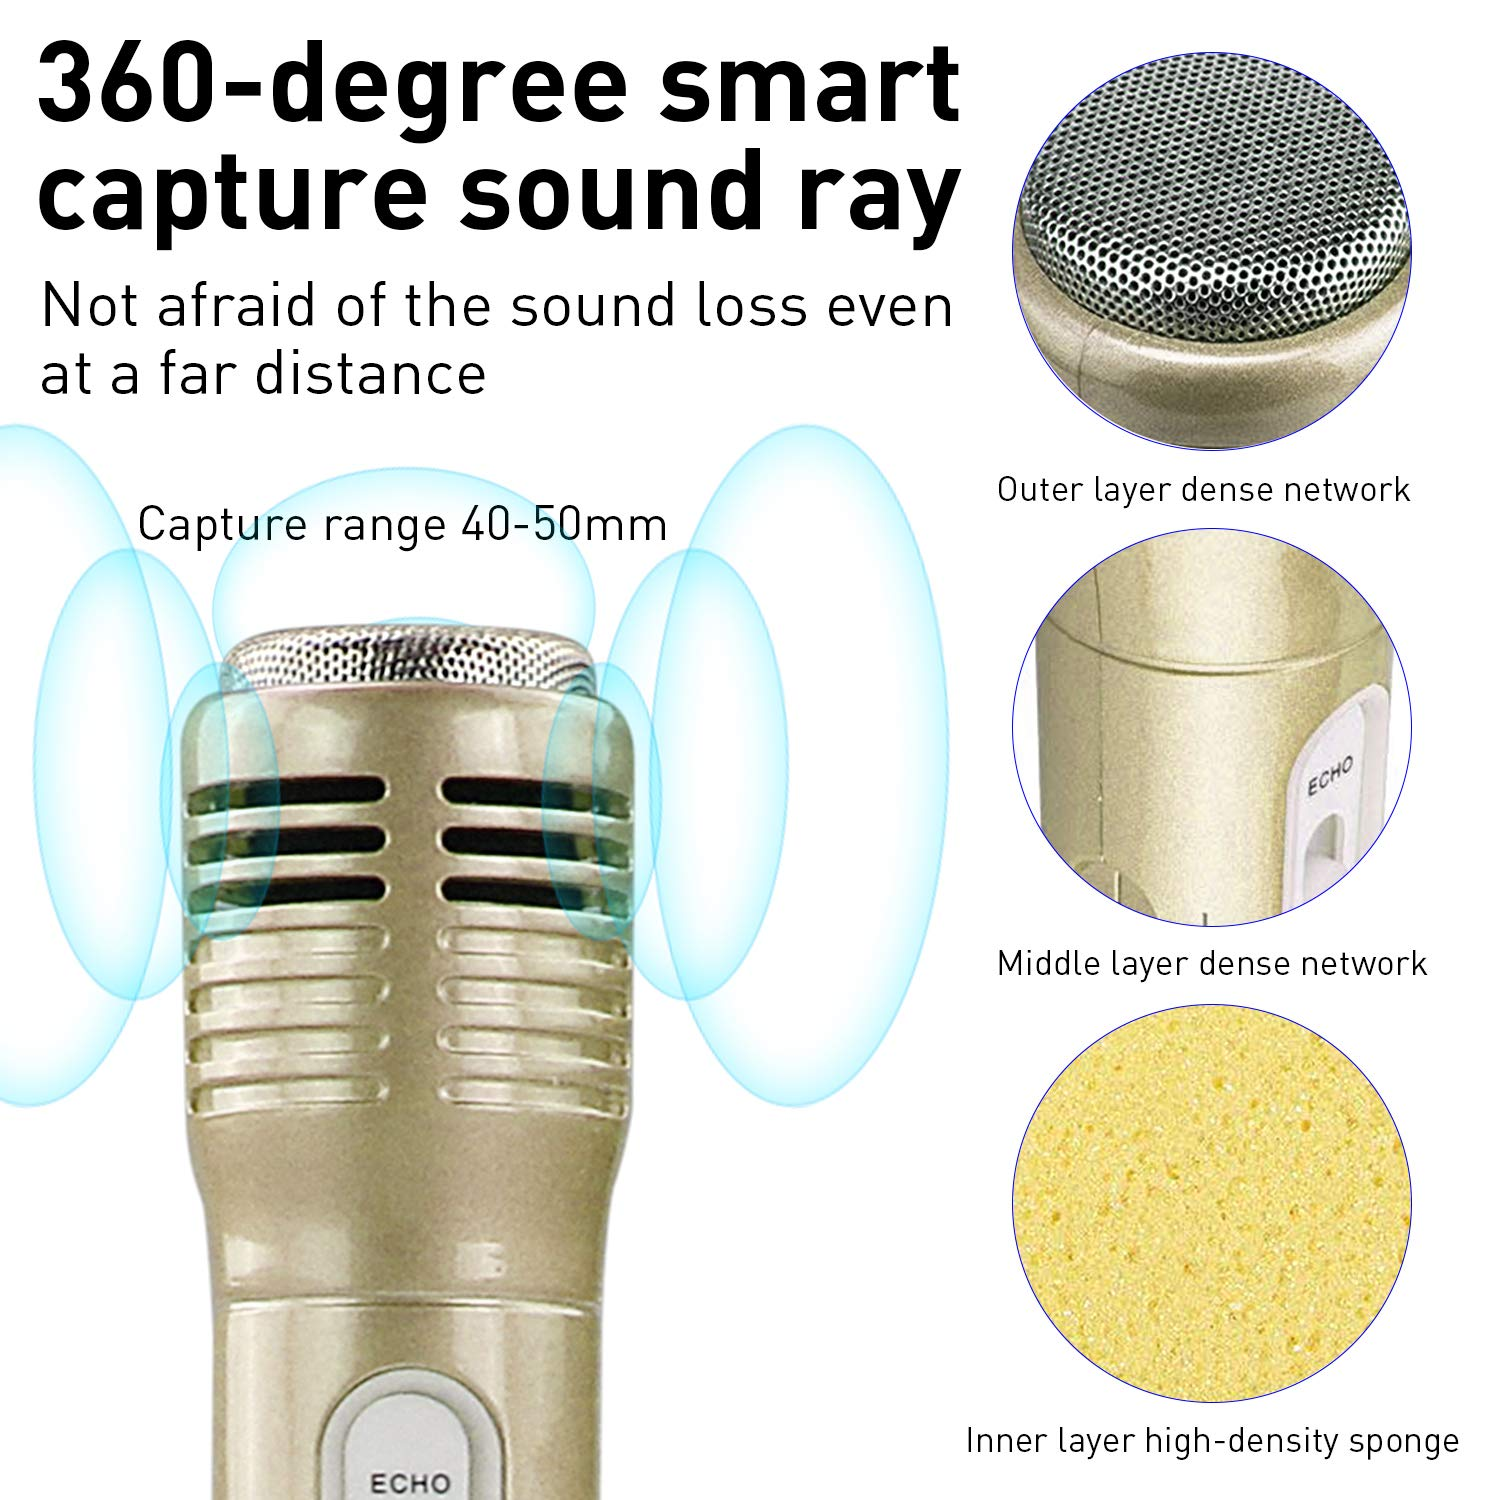 Microphone for Kids, Wireless Bluetooth Microphone with Bluetooth Speaker and Multi-color LED Lights Handheld Singing Machine Girls Boys Birthday Gift Compatible with PC/iPad/Smartphone - (Champagne) by WOSTOO (Image #2)